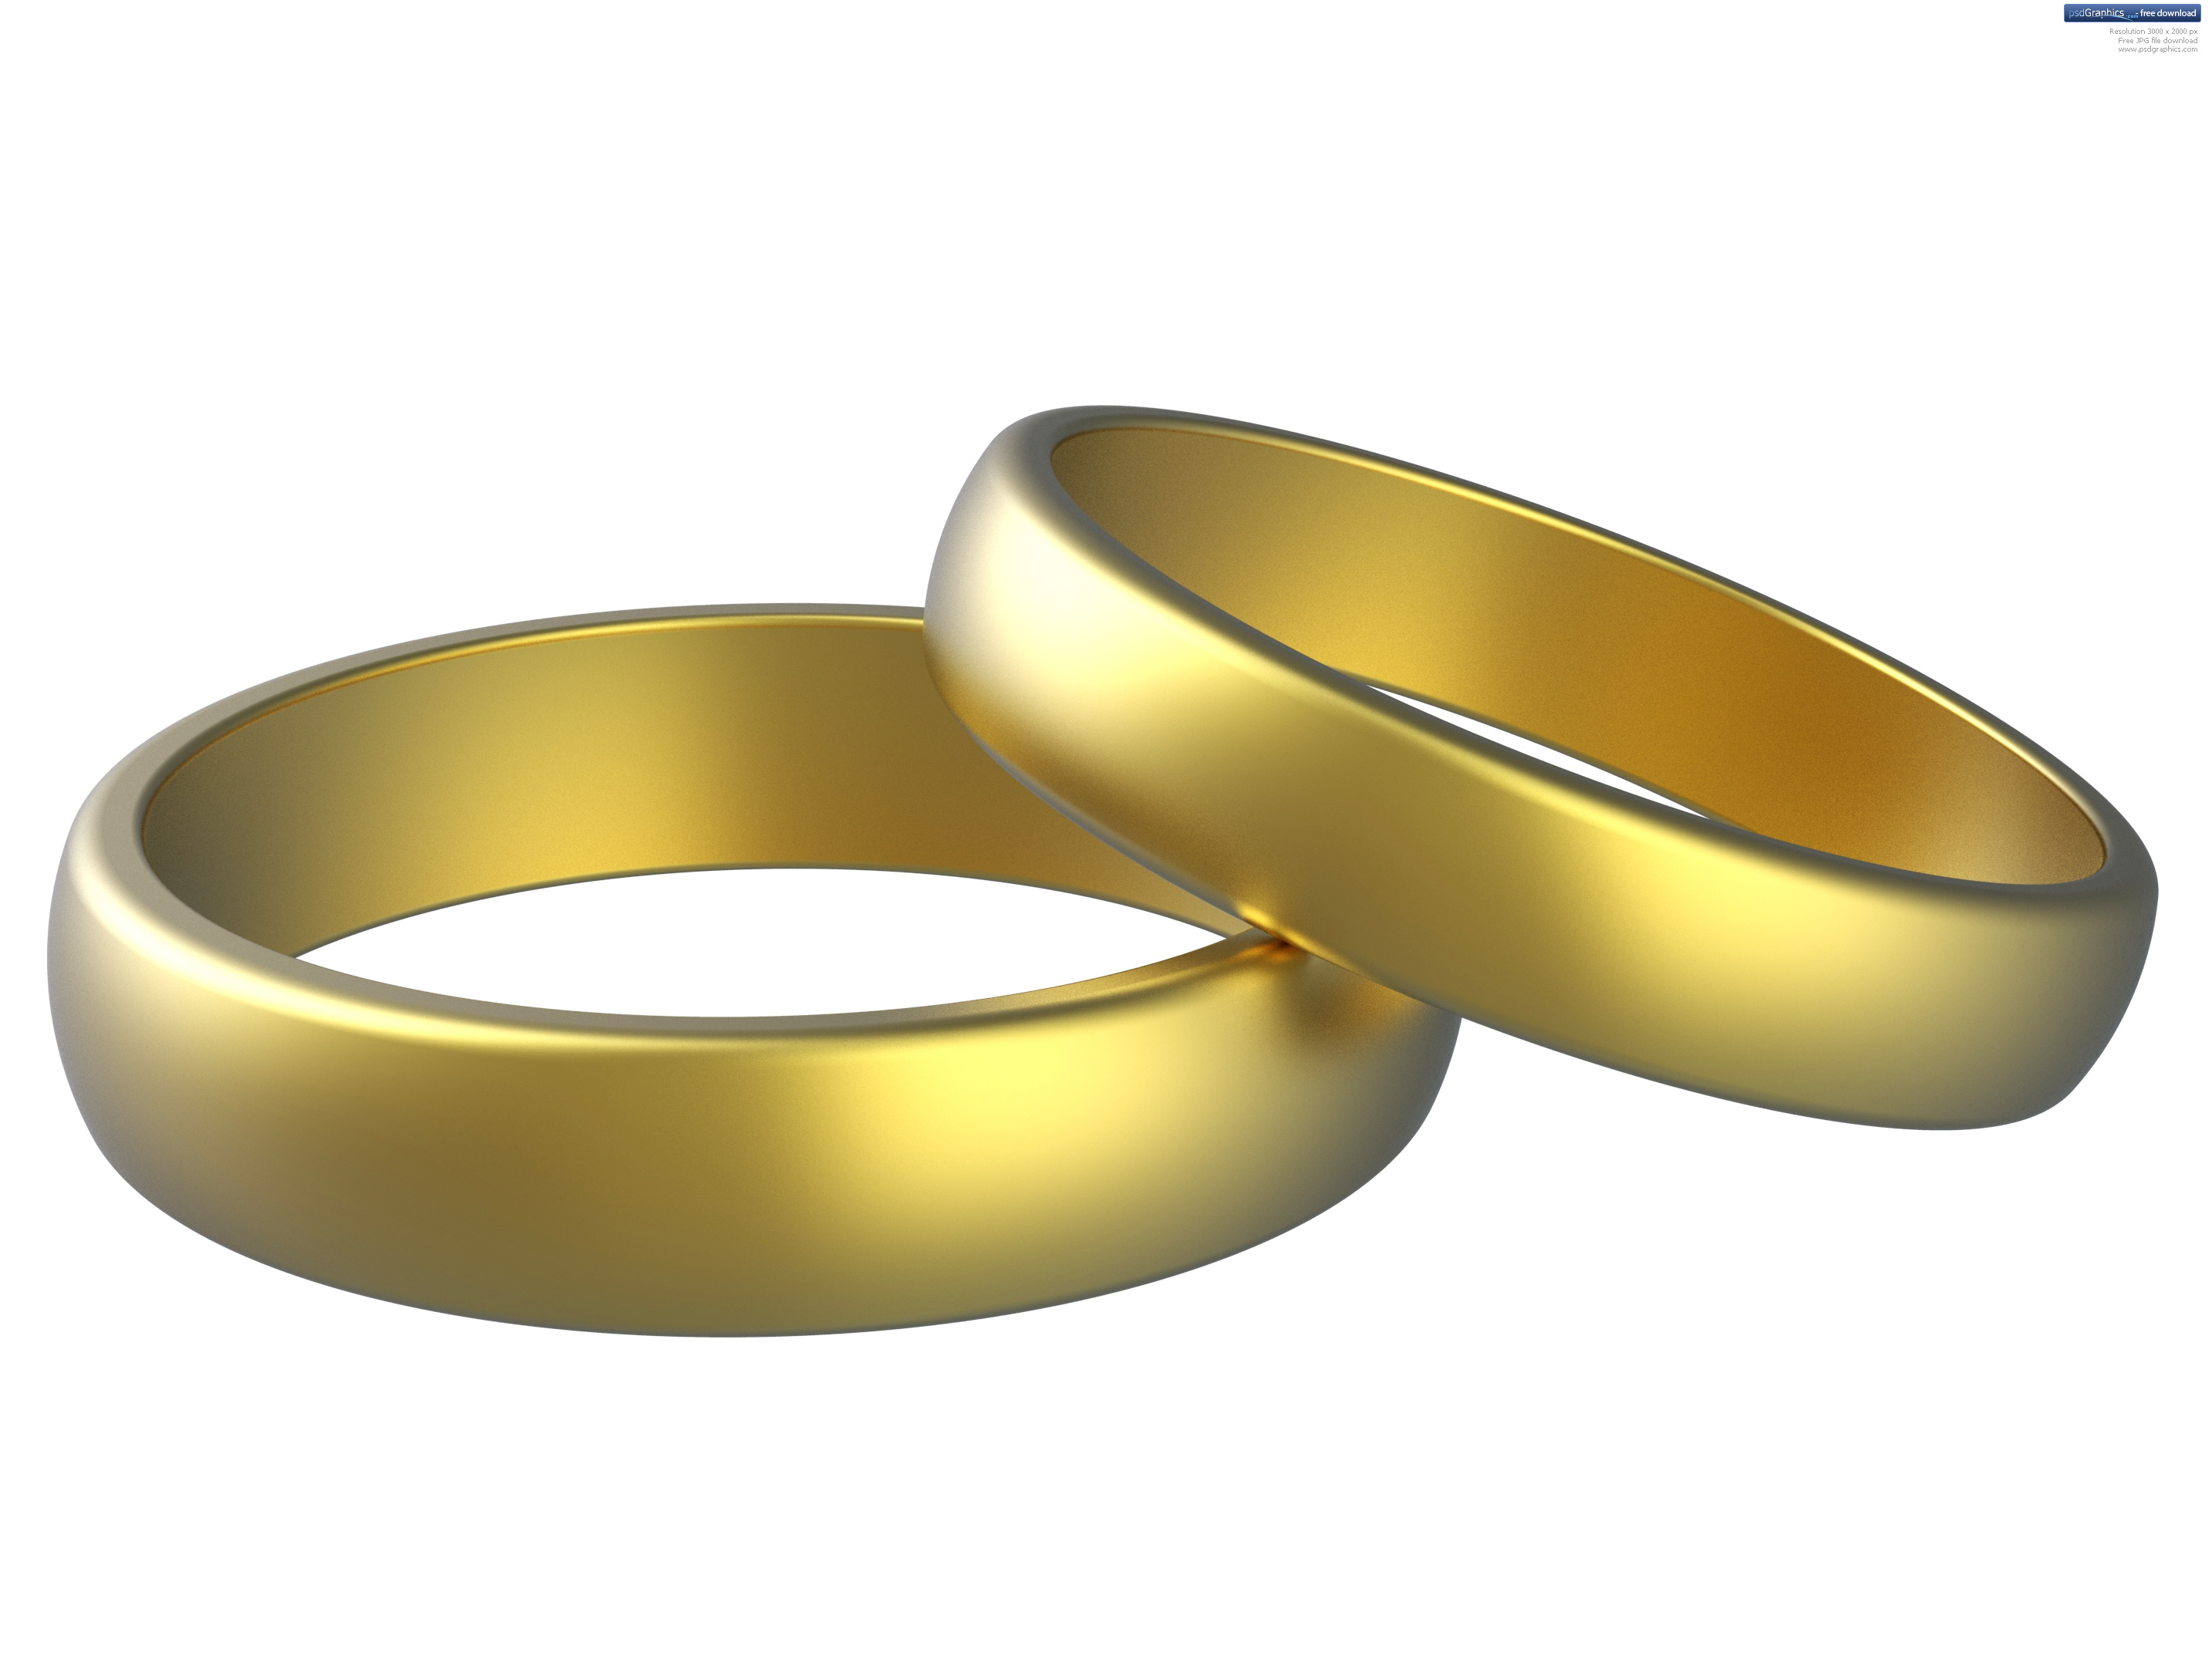 Double wedding rings clipart free svg library download wedding rings clipart | Kjpwg.com svg library download